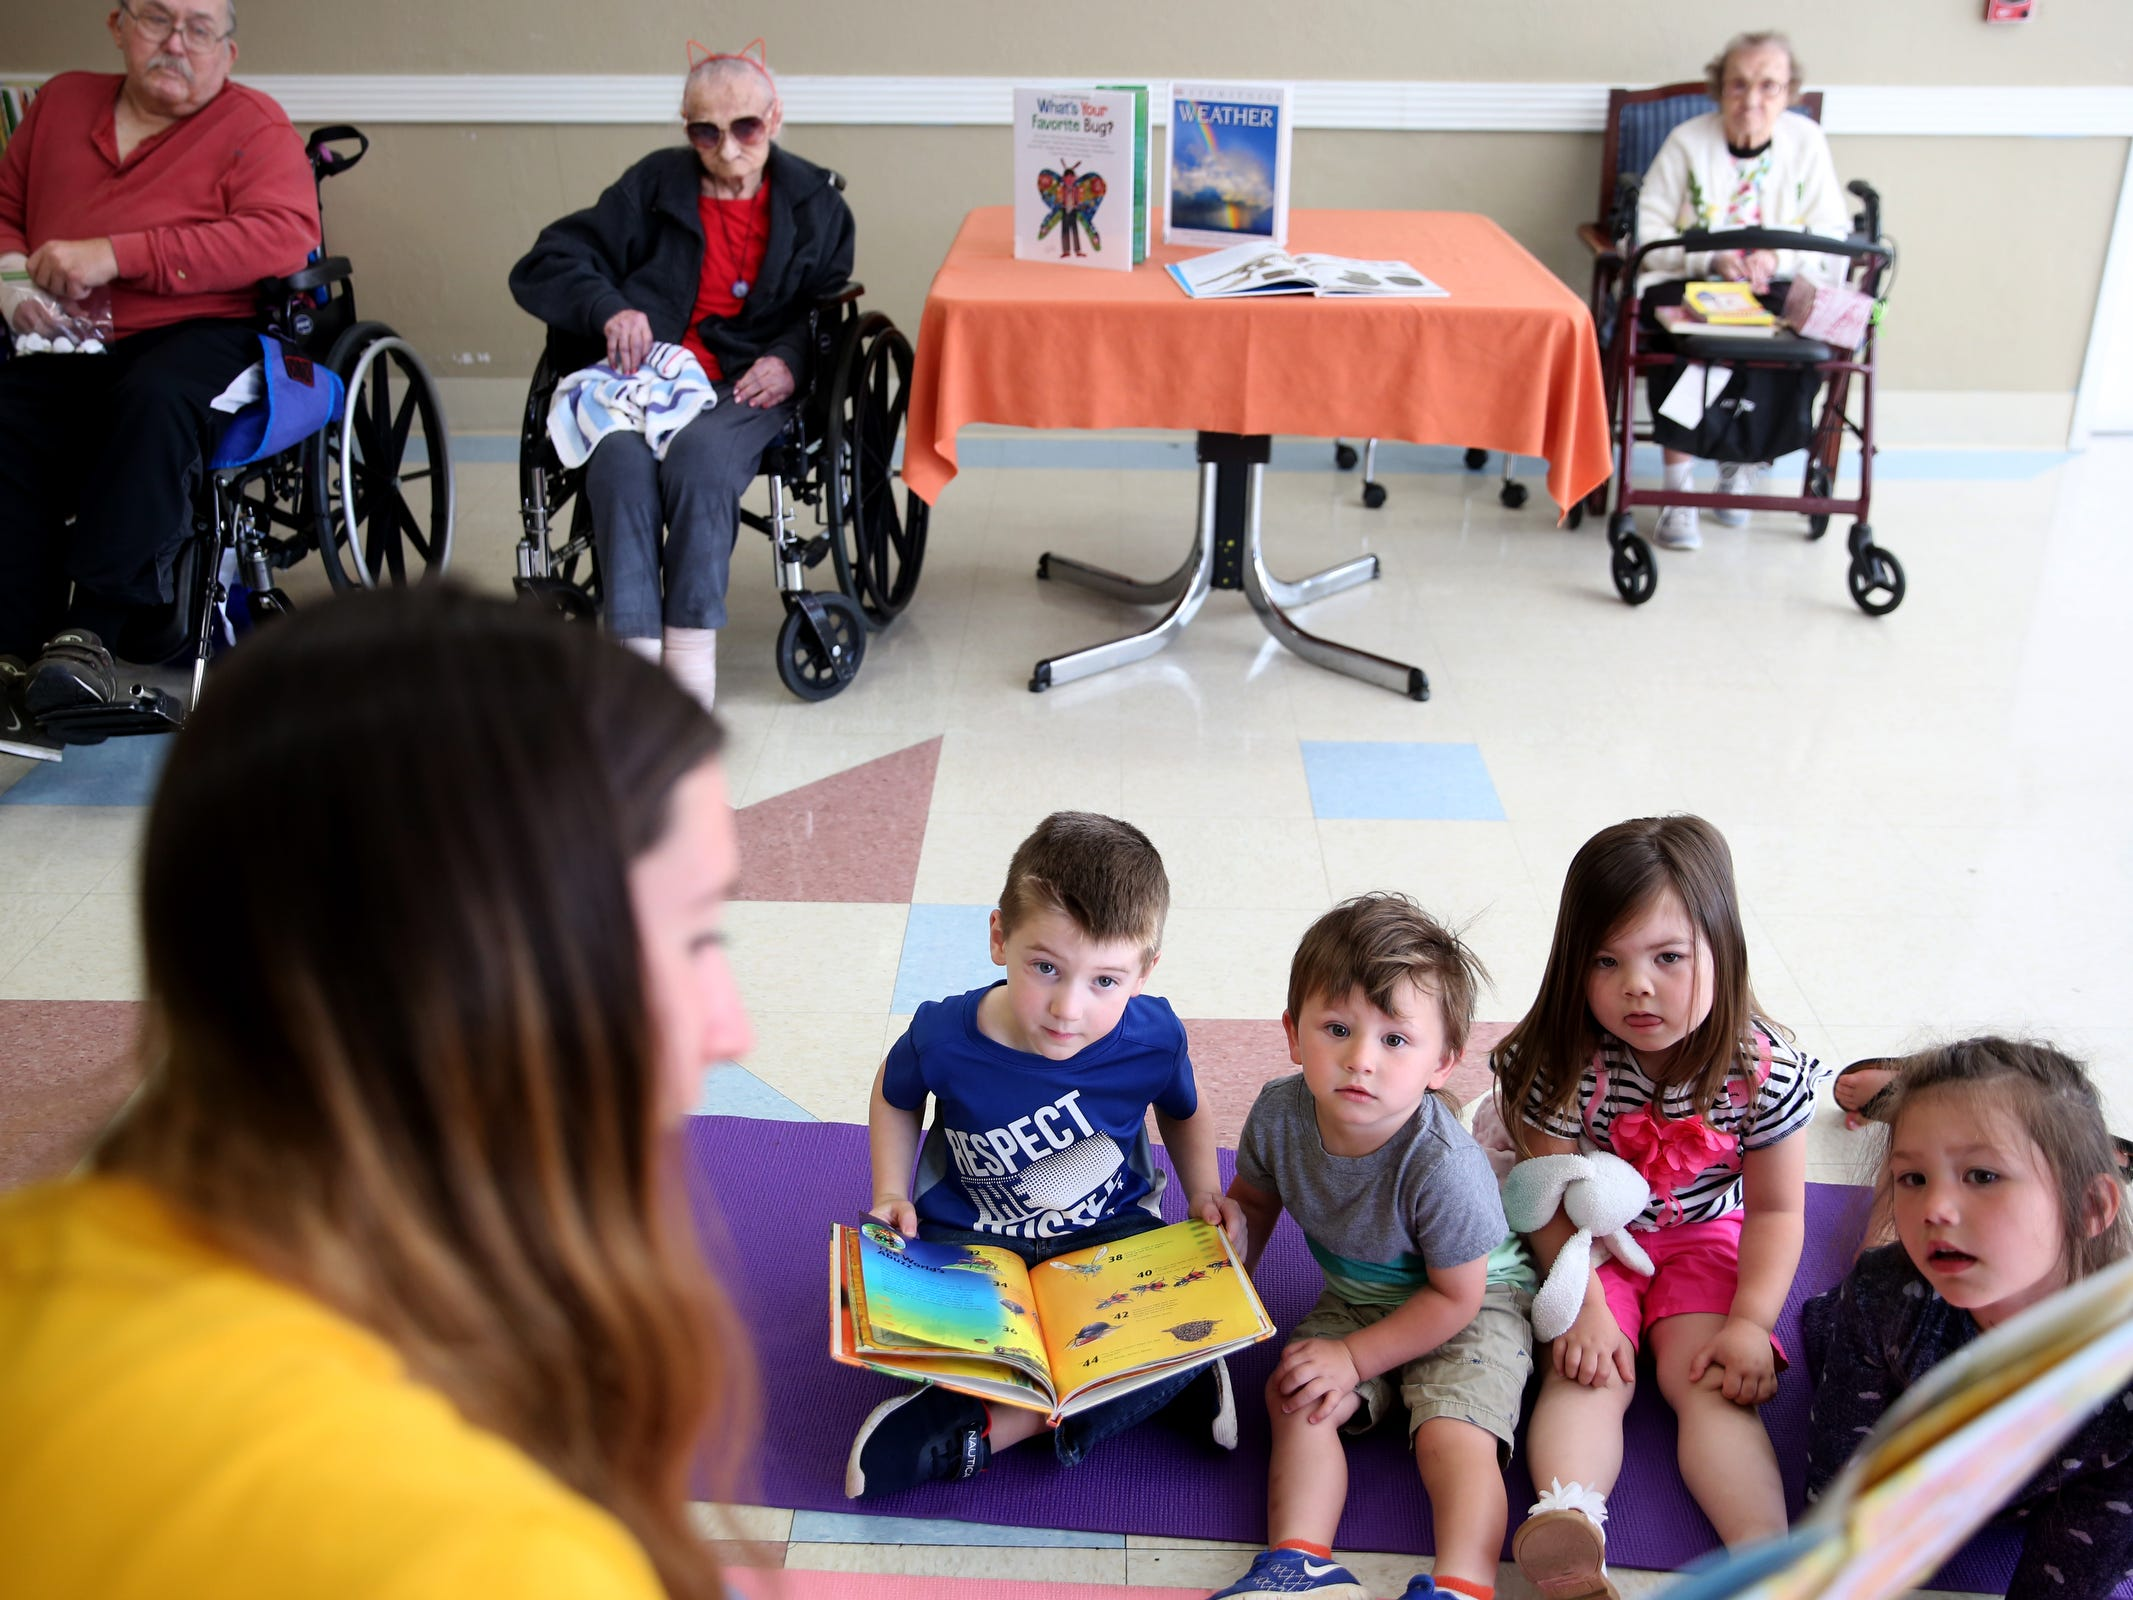 "Hank Jacobs, 5, Mateo Pineda, 2, Zora Thaggard, 3, and Eva Pineda, 4, listen as Makenzie Pineda reads a book to them during a visit by the Friendship Brigade, a group that focuses on intergenerational programming, at Avamere Transitional Care at Sunnyside in Salem on May 6, 2019. Once a week, ""Storytime at Sunnyside"" brings preschoolers to the seniors for reading, singing, dancing and other playtime activities."